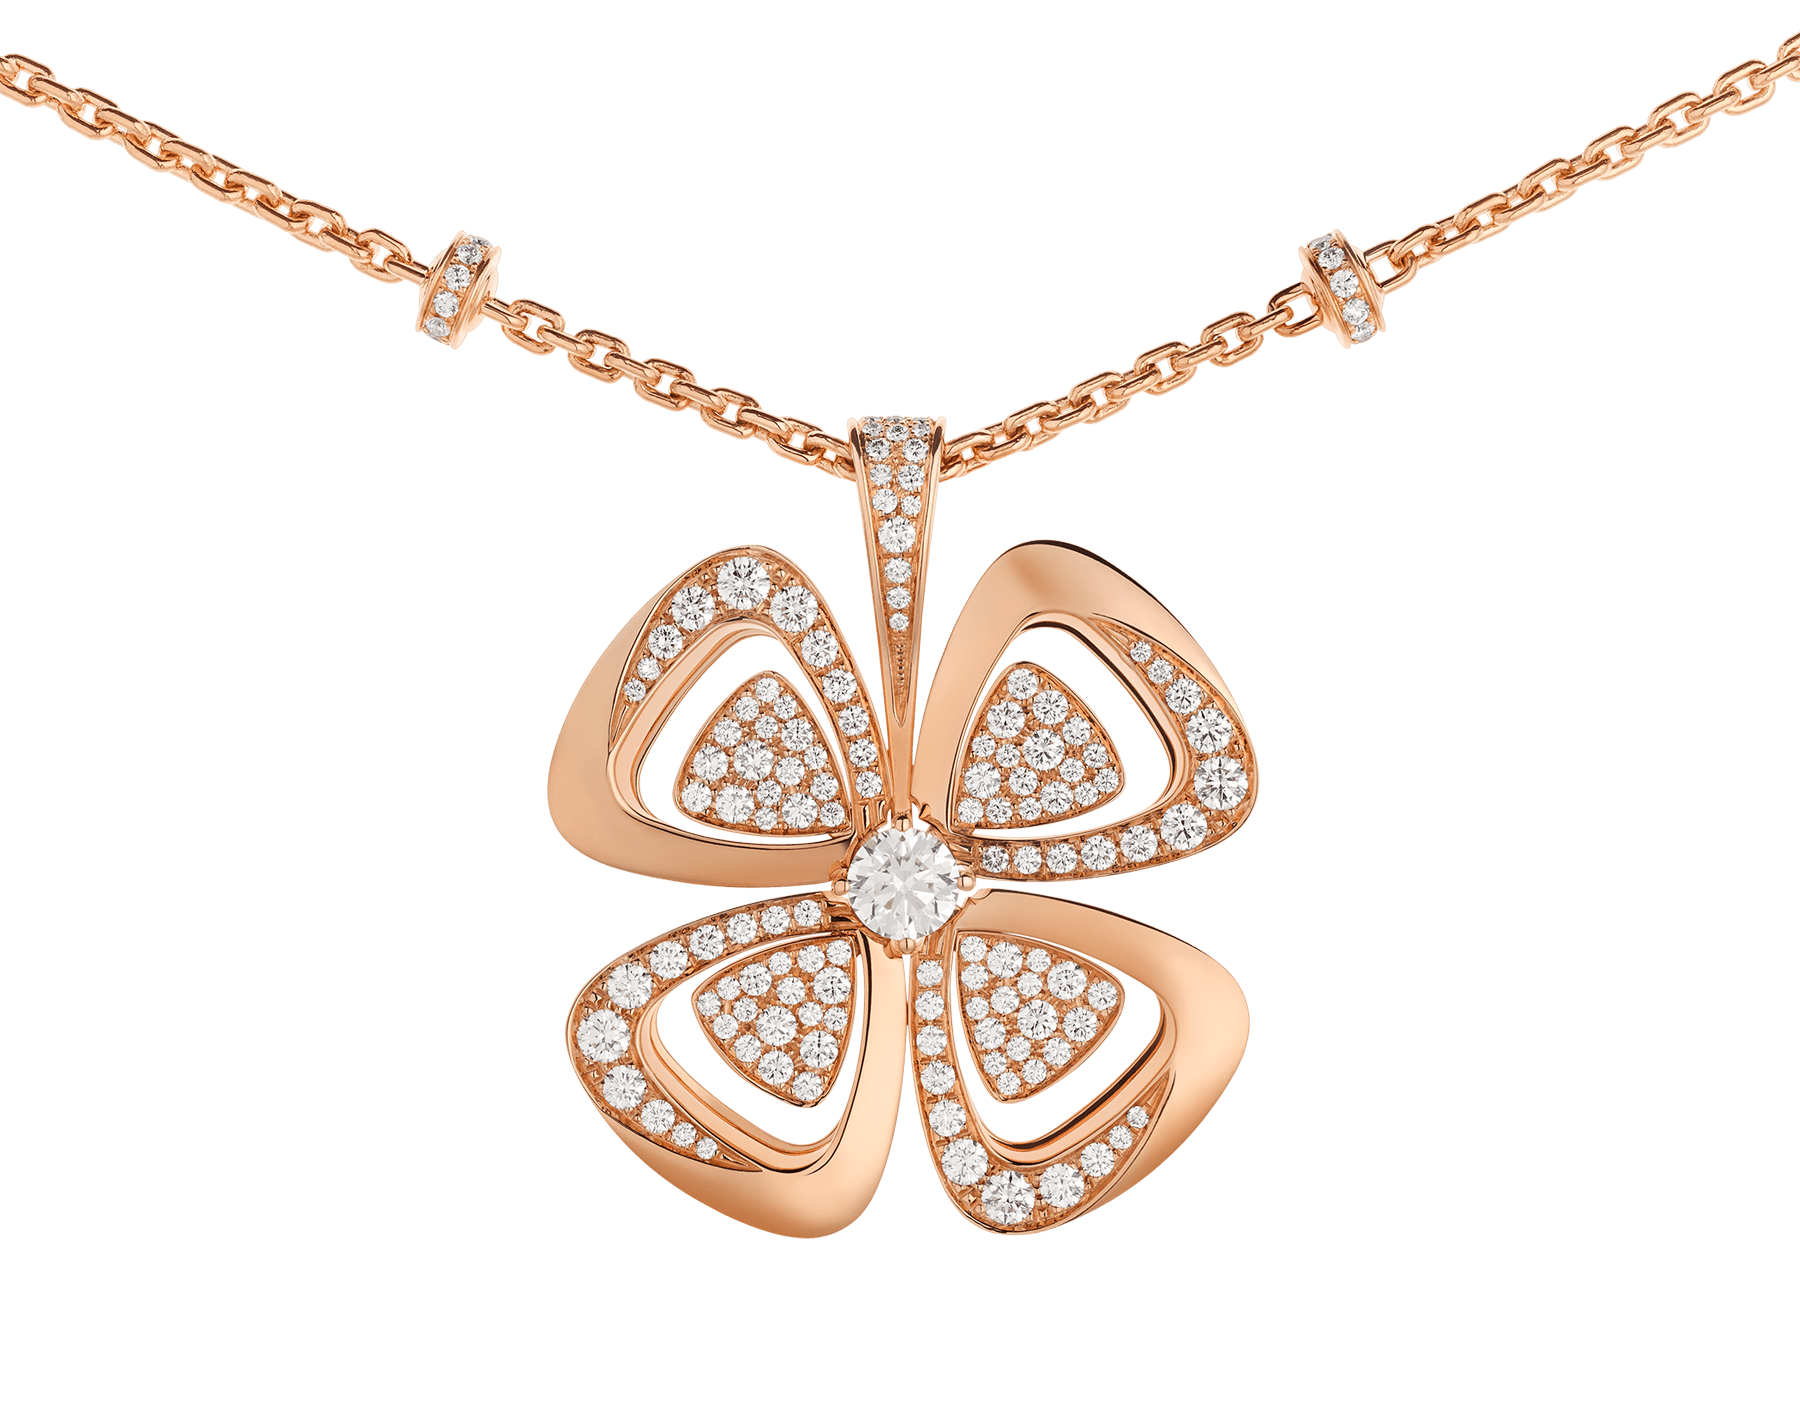 Fiorever 18 kt rose gold necklace set with a central round brilliant-cut diamond and pavé diamonds. 357218 image 3